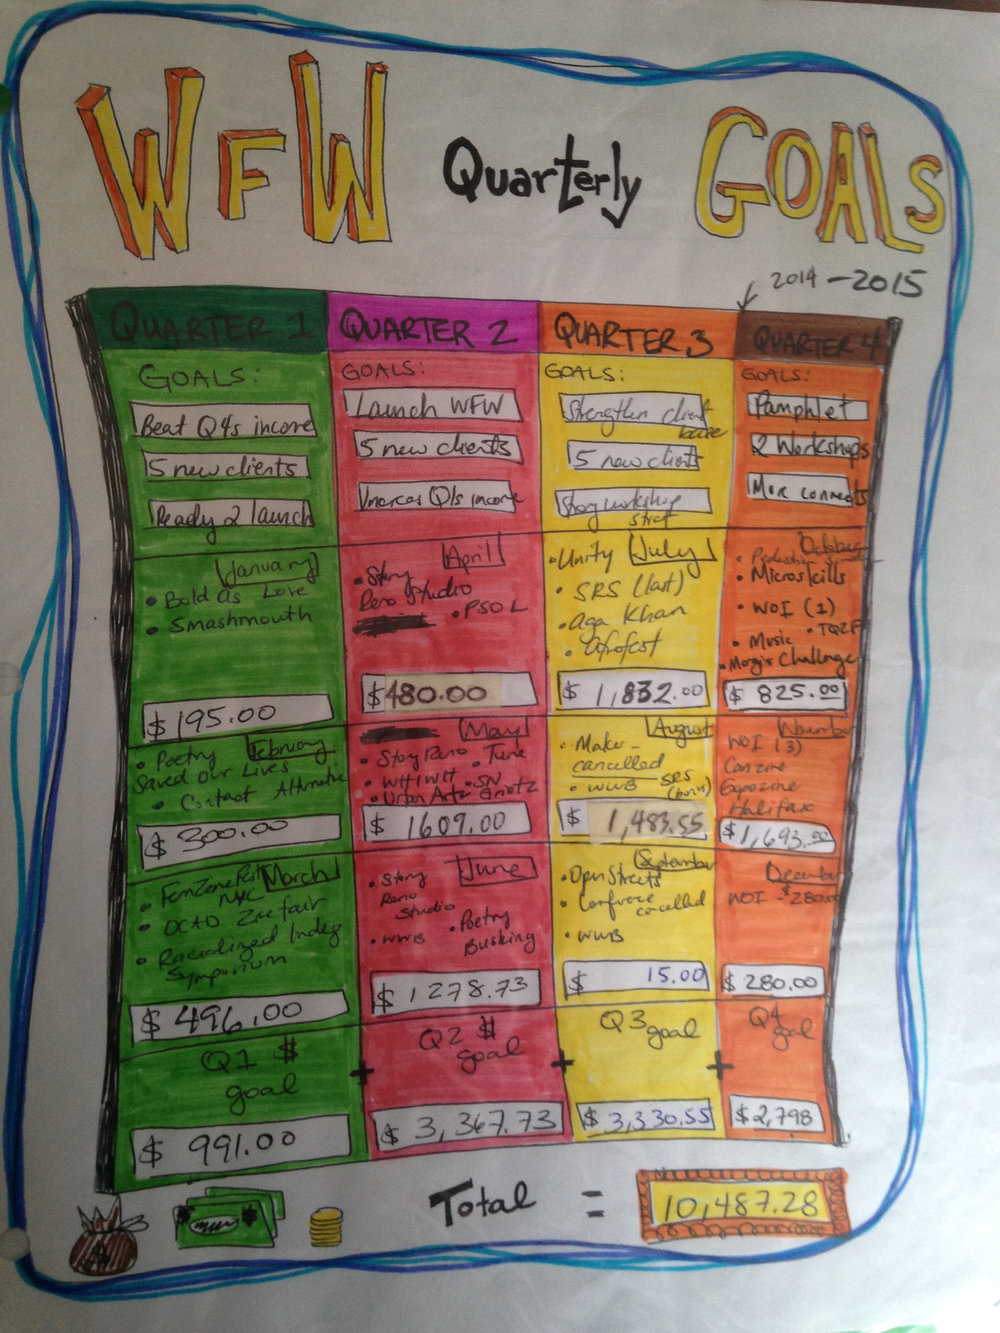 A super transparent summary of the moneys made during early years of WFW and how I broke down the quarterly dollars and the corresponding quarterly goals. This would be on the first page inside one of my binders